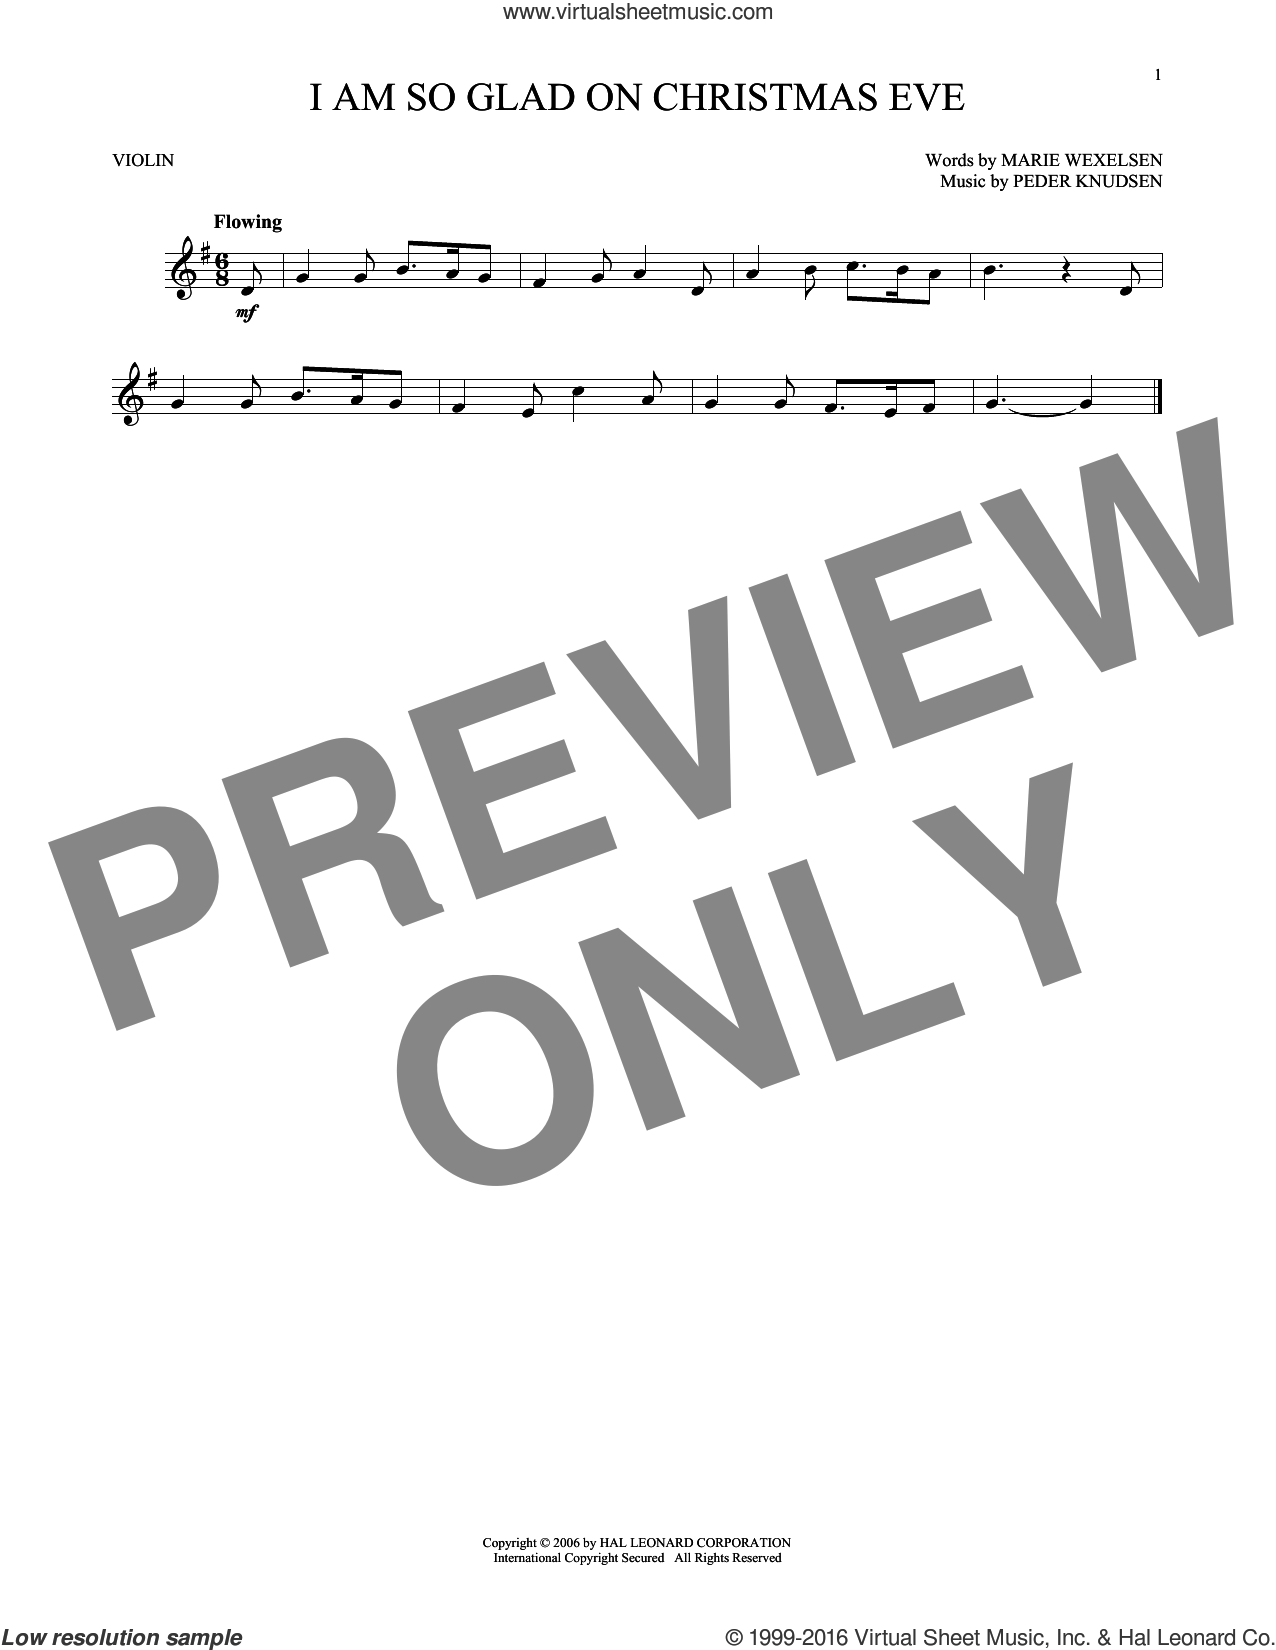 I Am So Glad On Christmas Eve sheet music for violin solo by Marie Wexelsen and Peder Knudsen, intermediate skill level